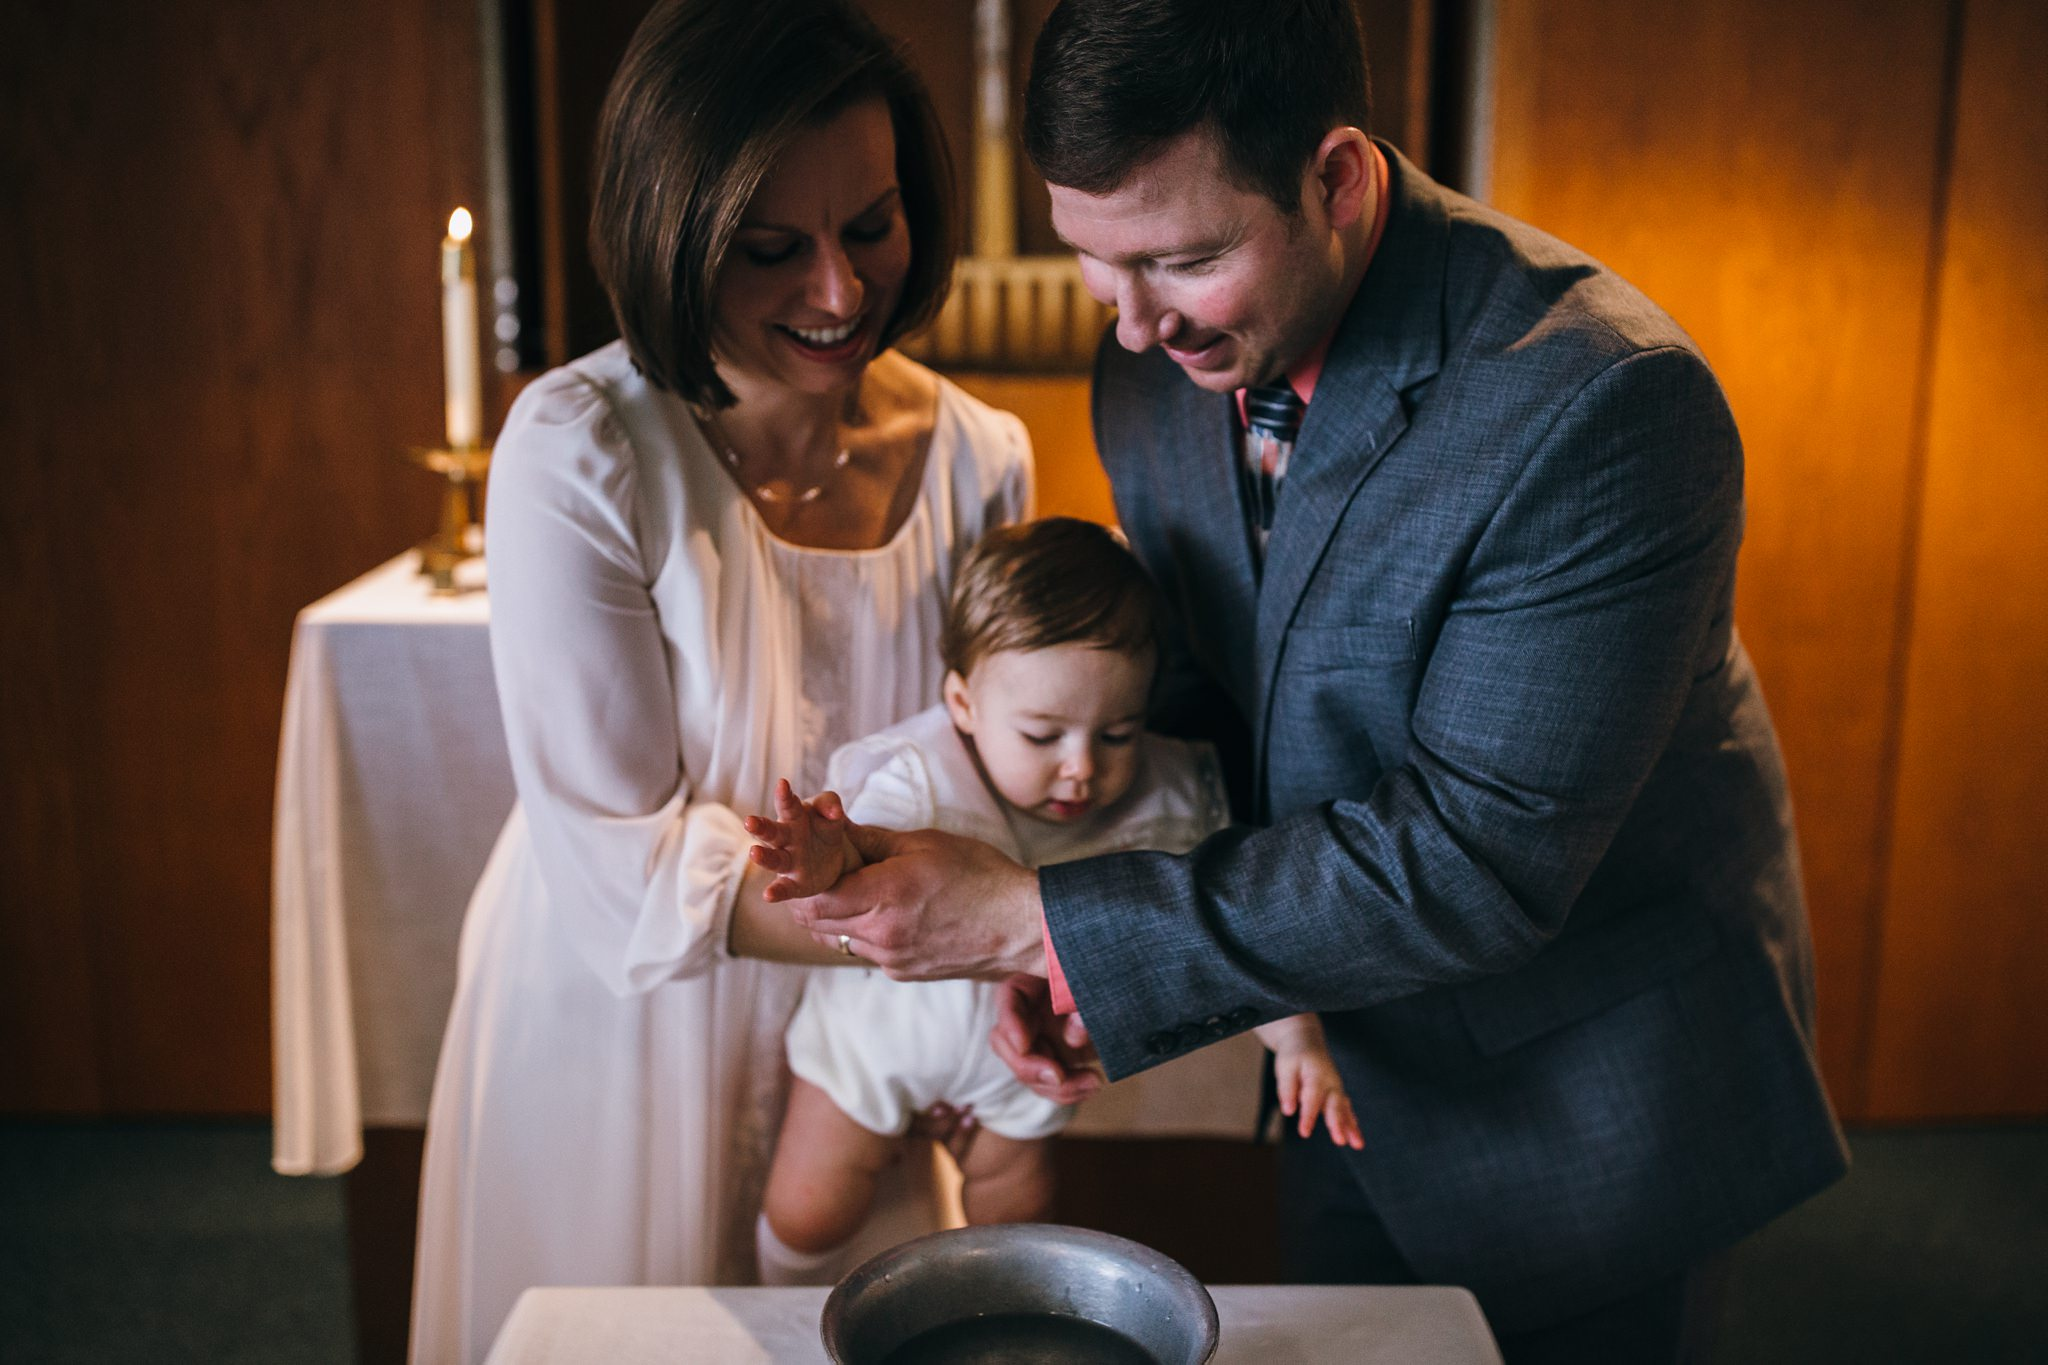 Whidbey-Island-Family-Photographer-Kara-Chappell-Photography_1844.jpg